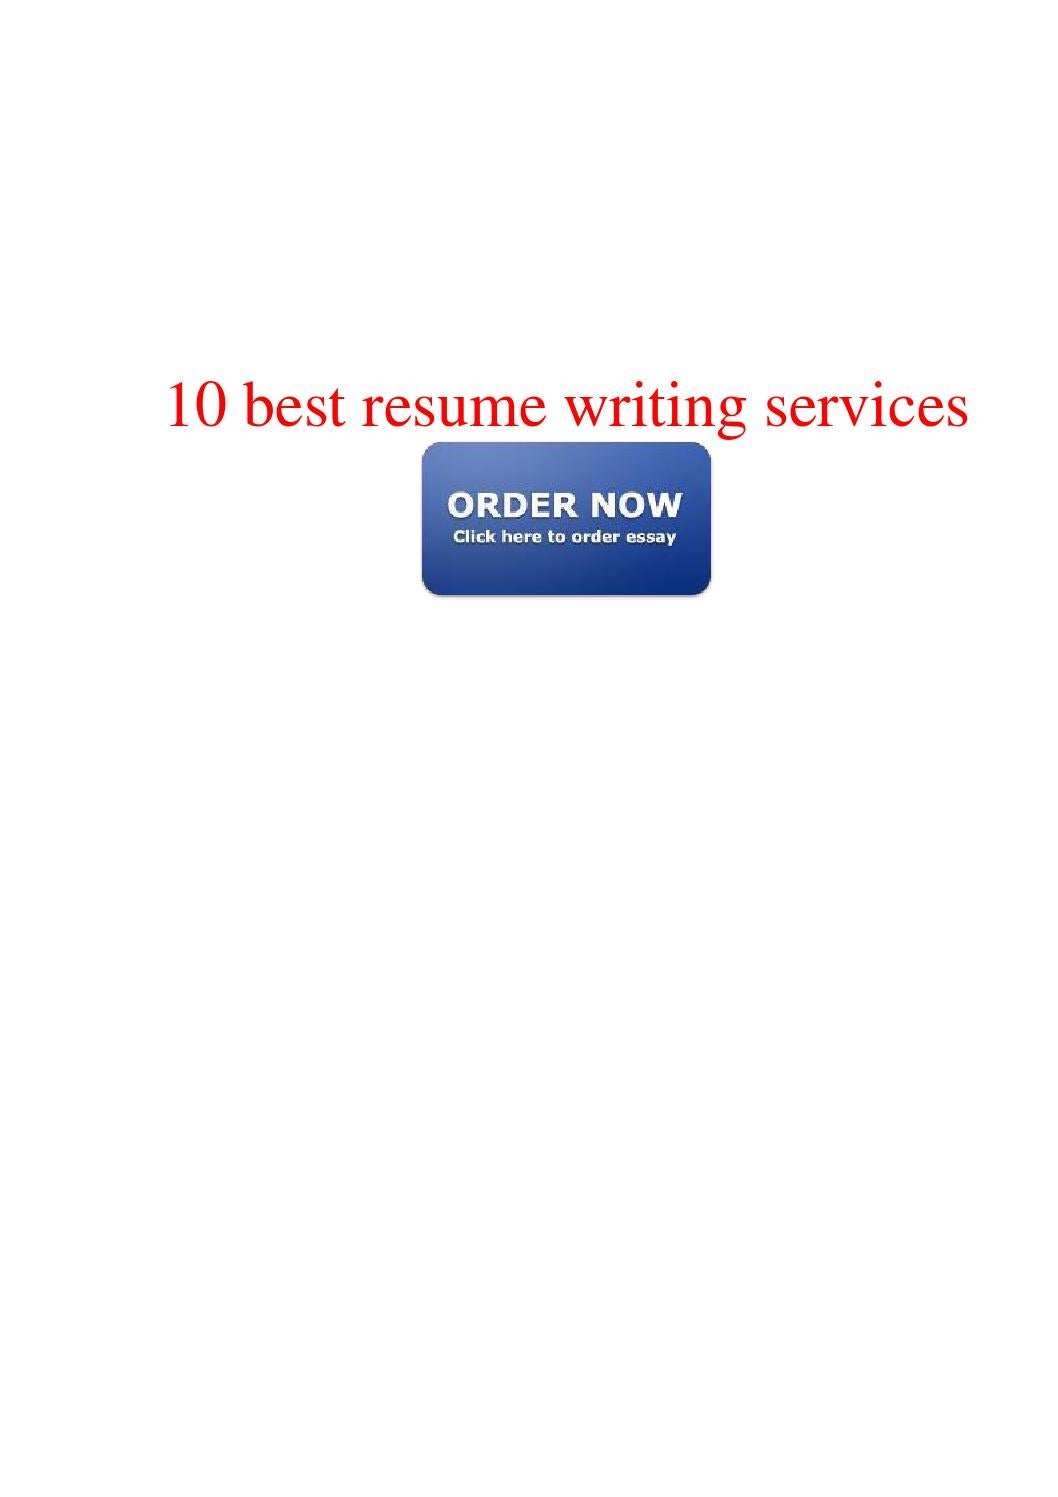 10 best resume writing service healthcare